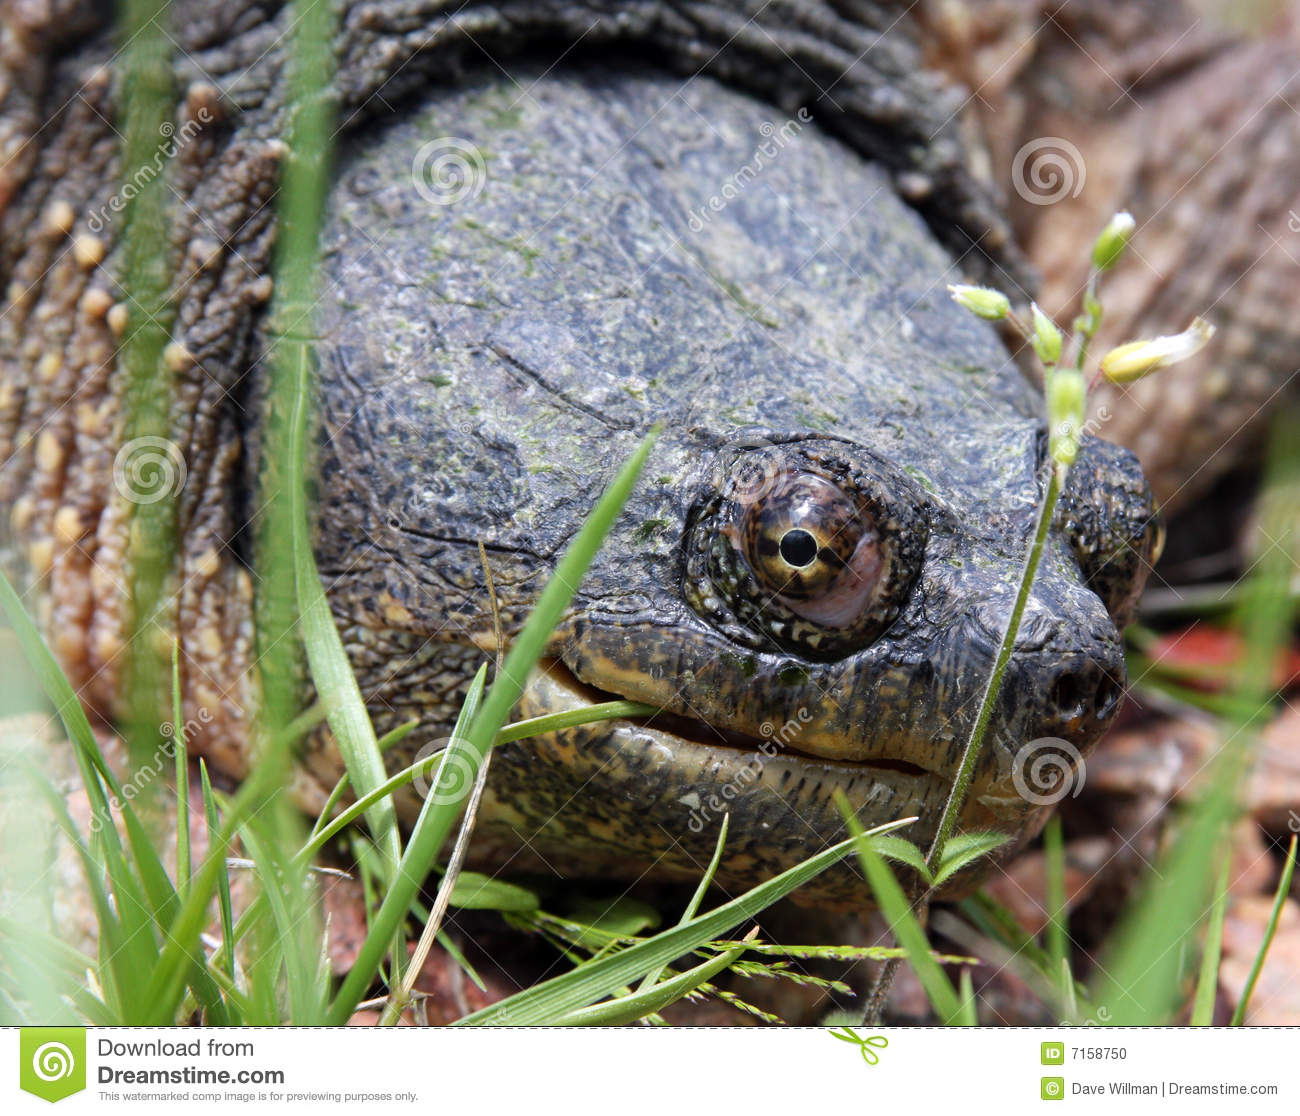 Head shot of a snapping turtle